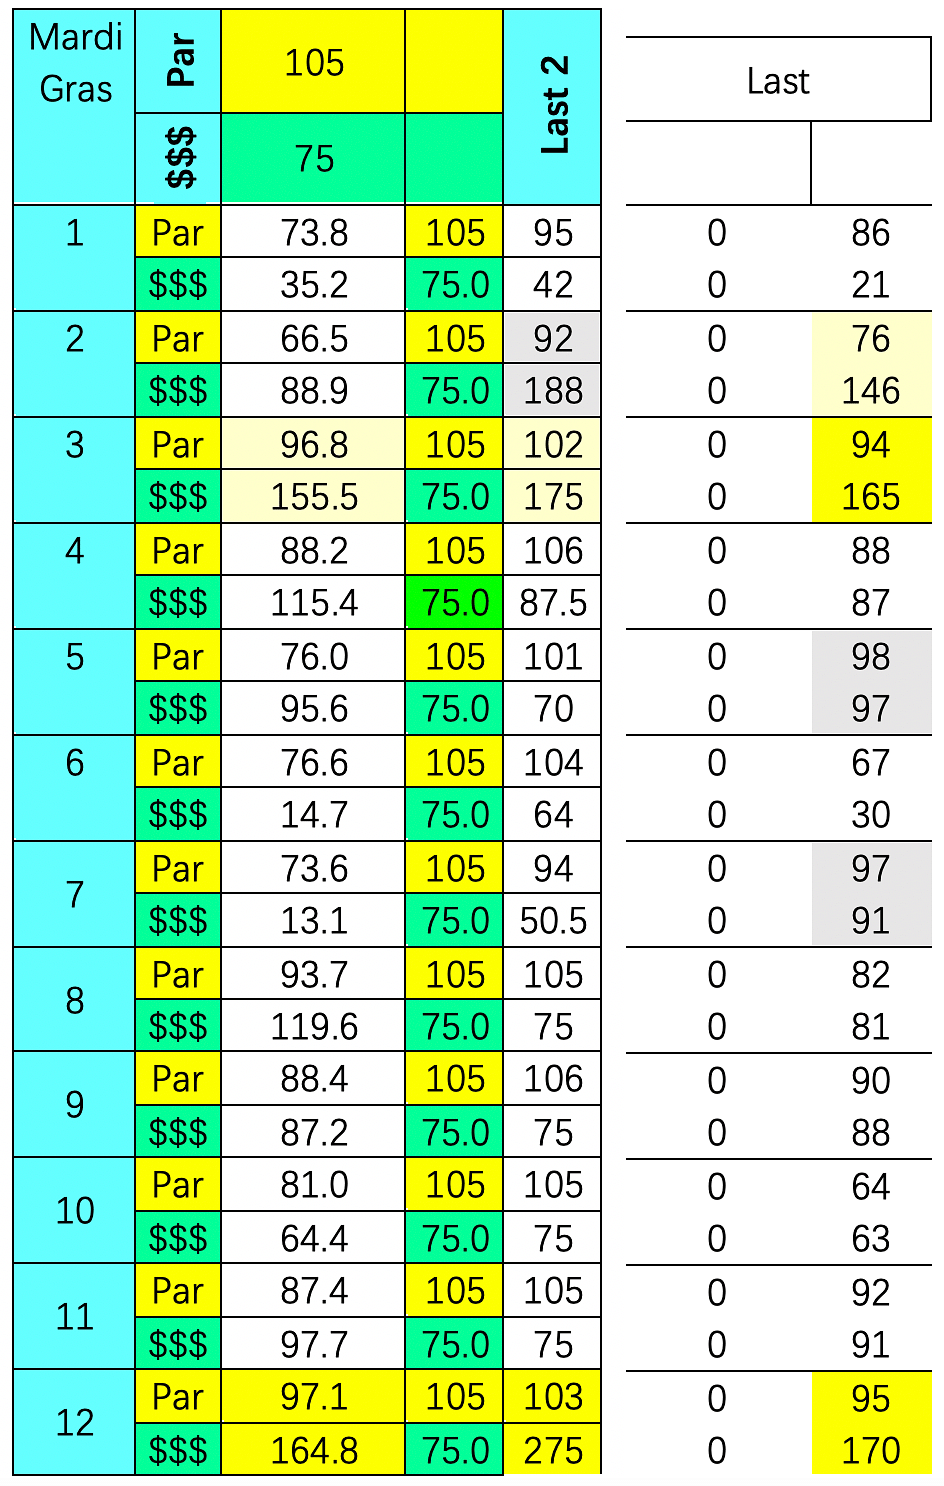 SmartCap analysis of the Mardi Gras Stakes at the Fair Grounds